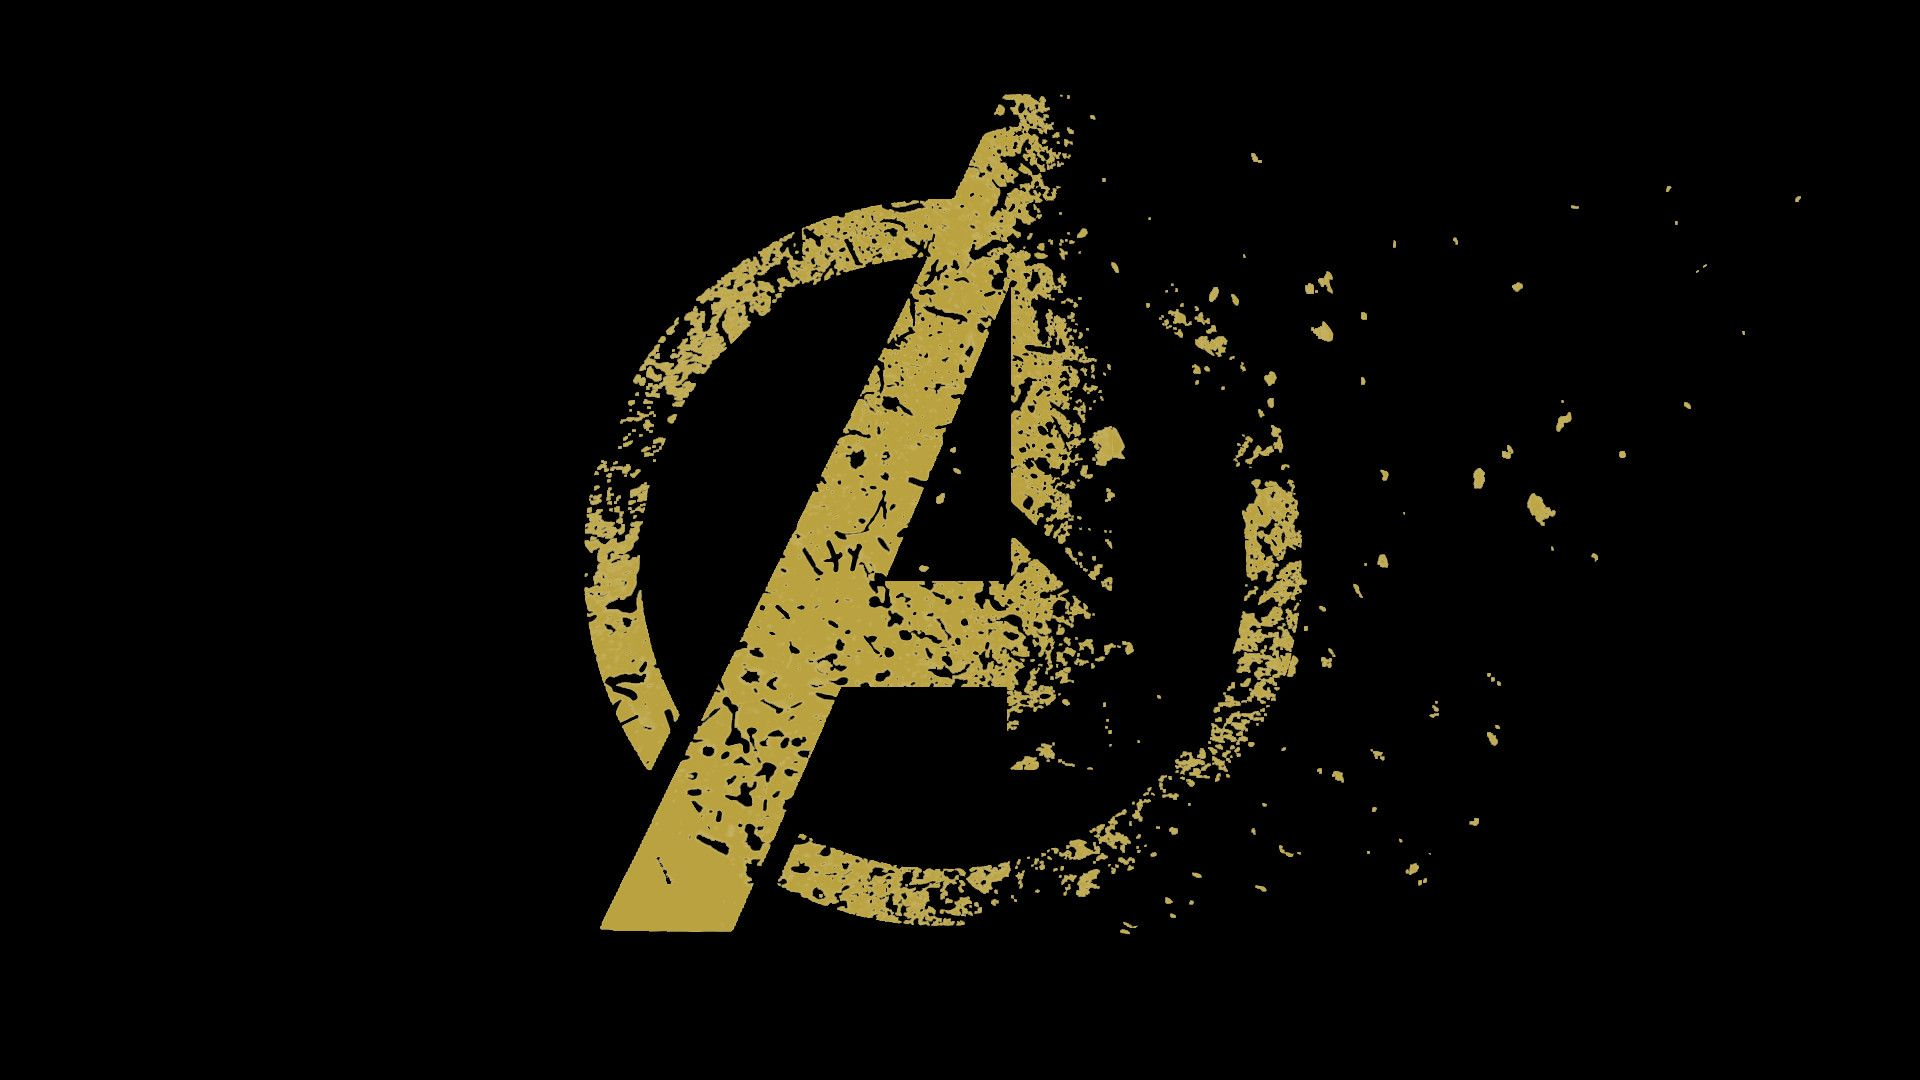 Avengers Logo Desktop Wallpapers Top Free Avengers Logo Desktop Backgrounds Wallpaperaccess